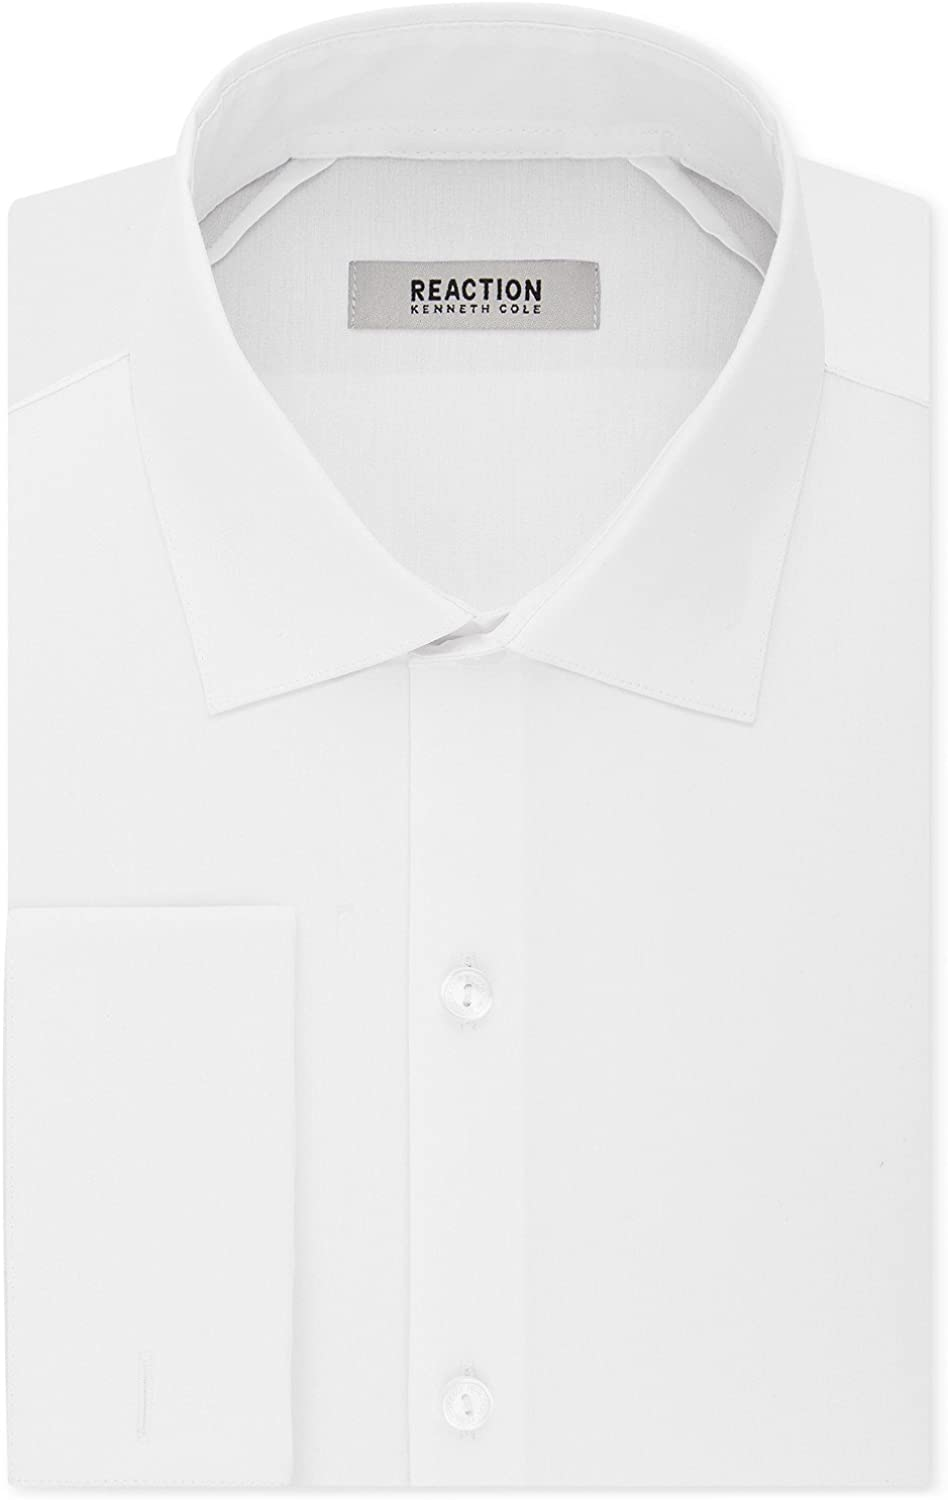 Kenneth Cole Reaction Slim Fit Wrinkle Free